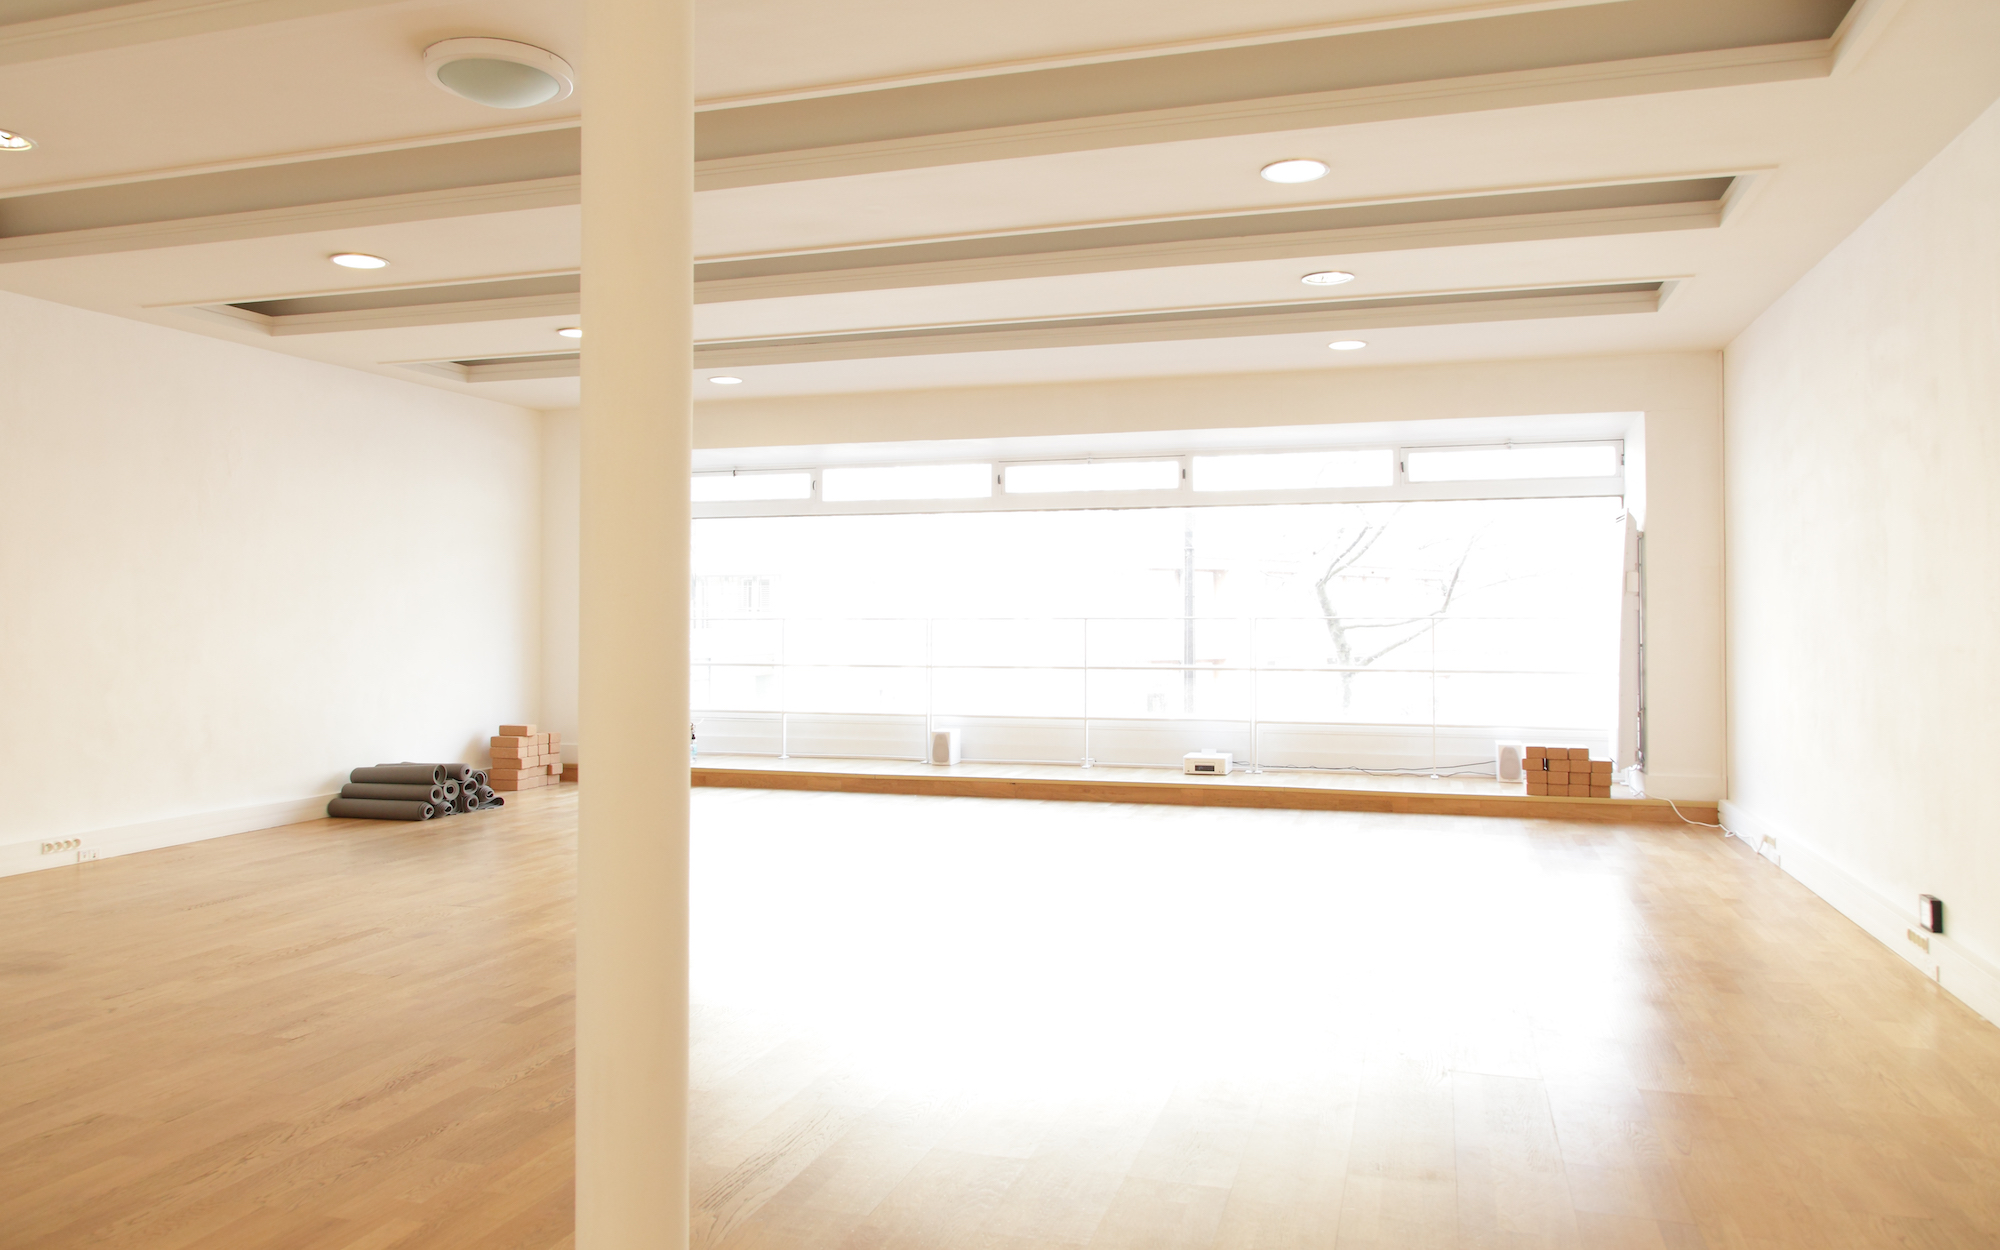 From Bikram to Vinyasa Flow: Paris' Best Yoga Studios